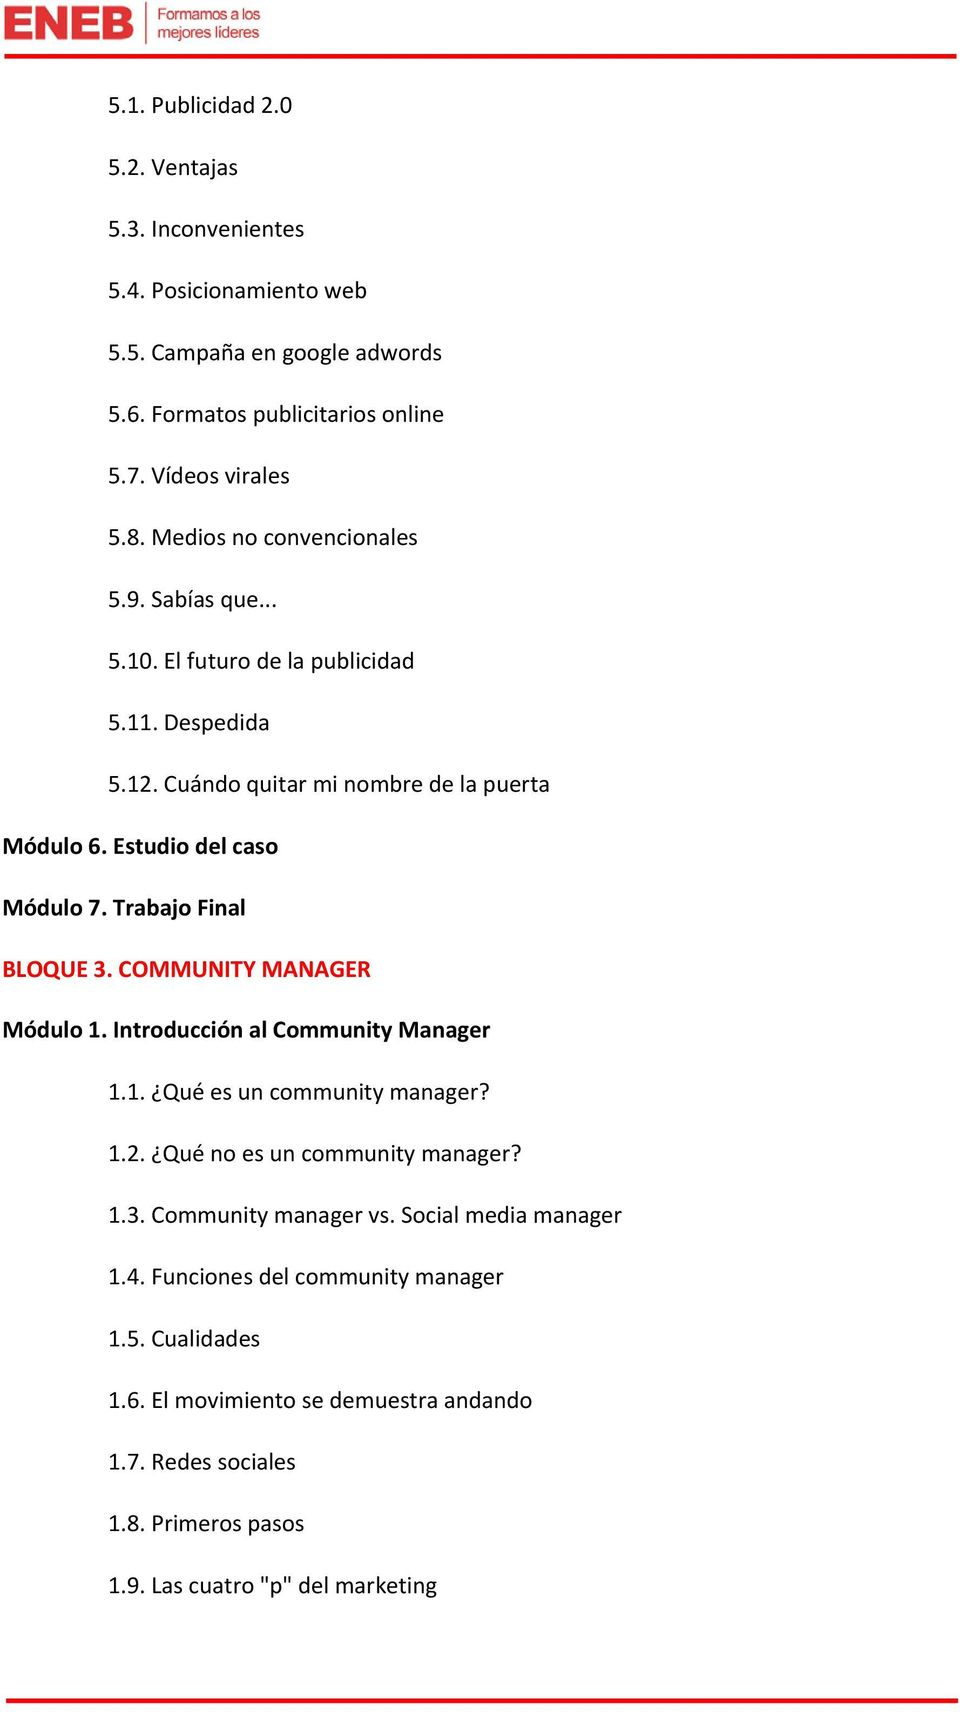 Trabajo Final BLOQUE 3. COMMUNITY MANAGER Módulo 1. Introducción al Community Manager 1.1. Qué es un community manager? 1.2. Qué no es un community manager? 1.3. Community manager vs.